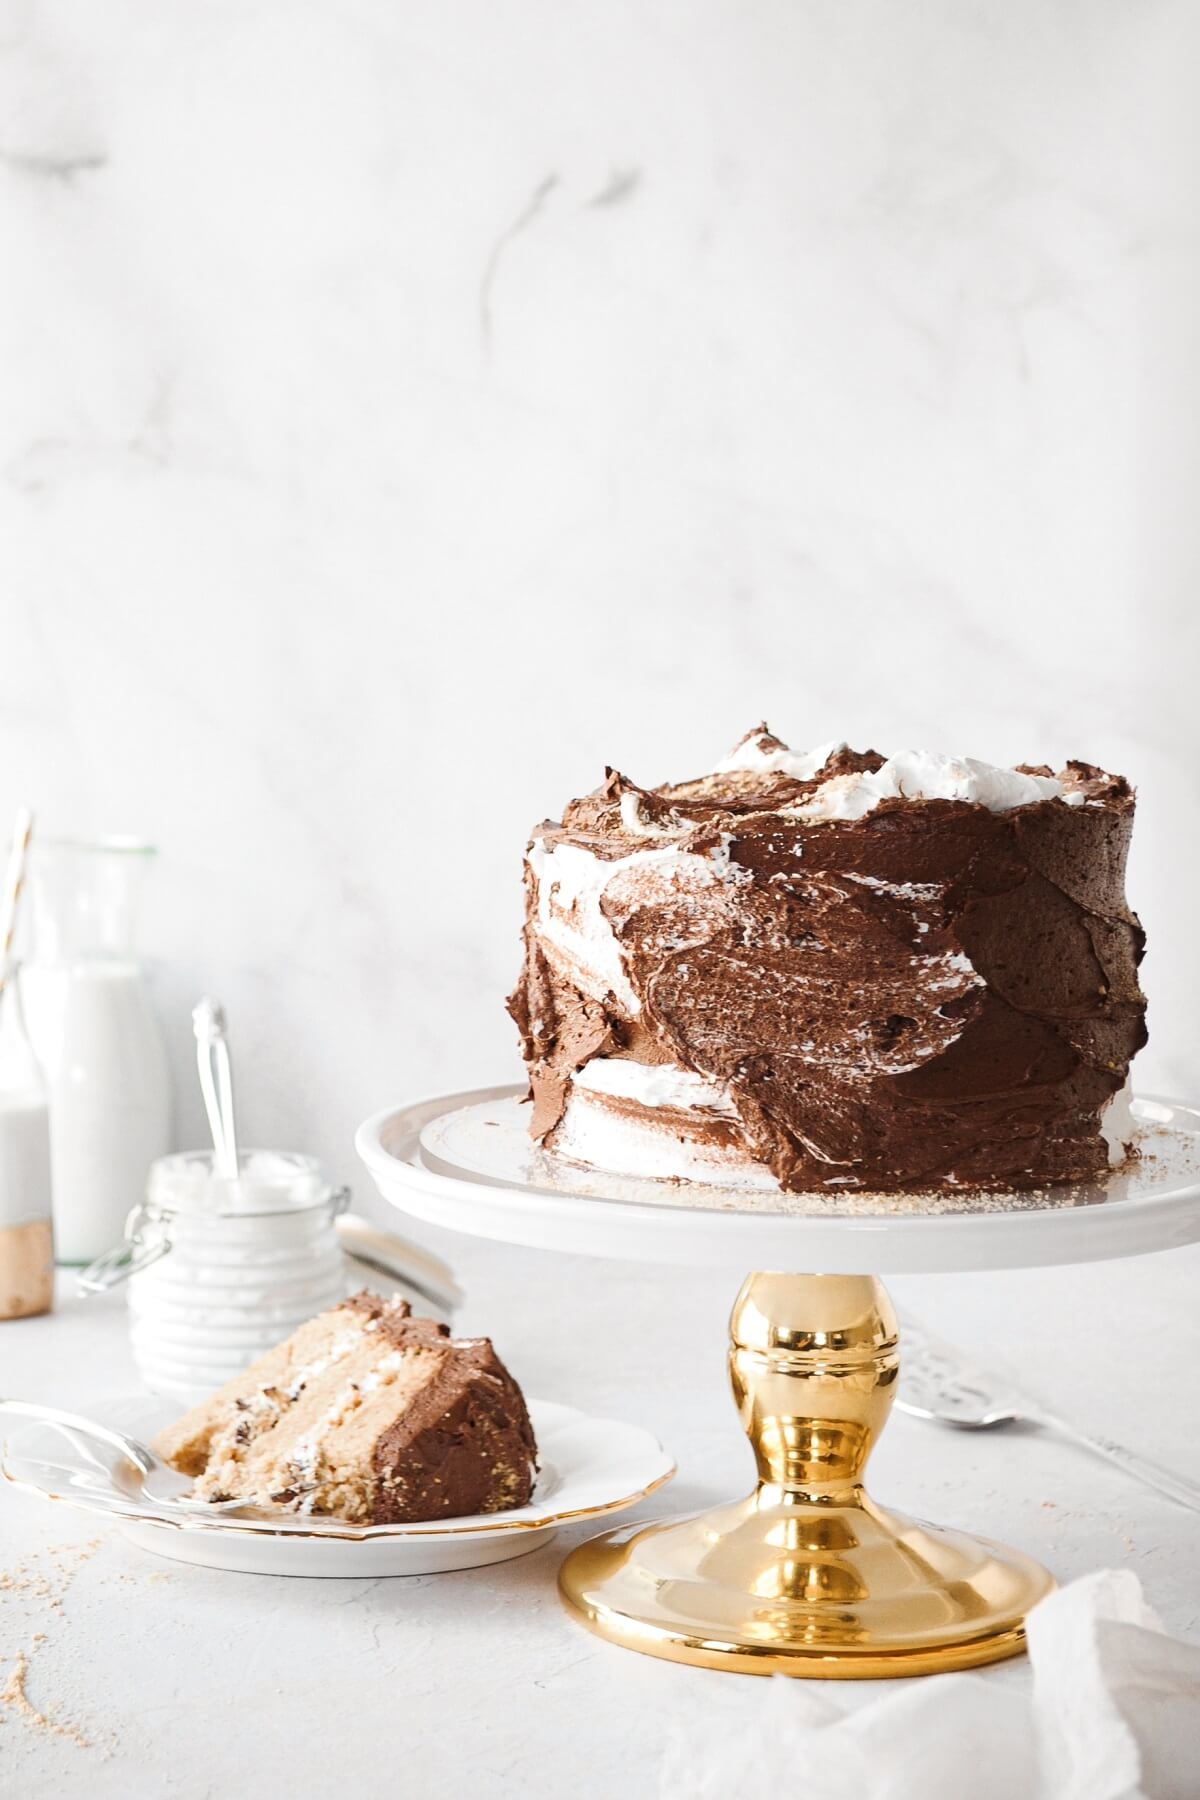 A s'mores cake, with a slice cut.